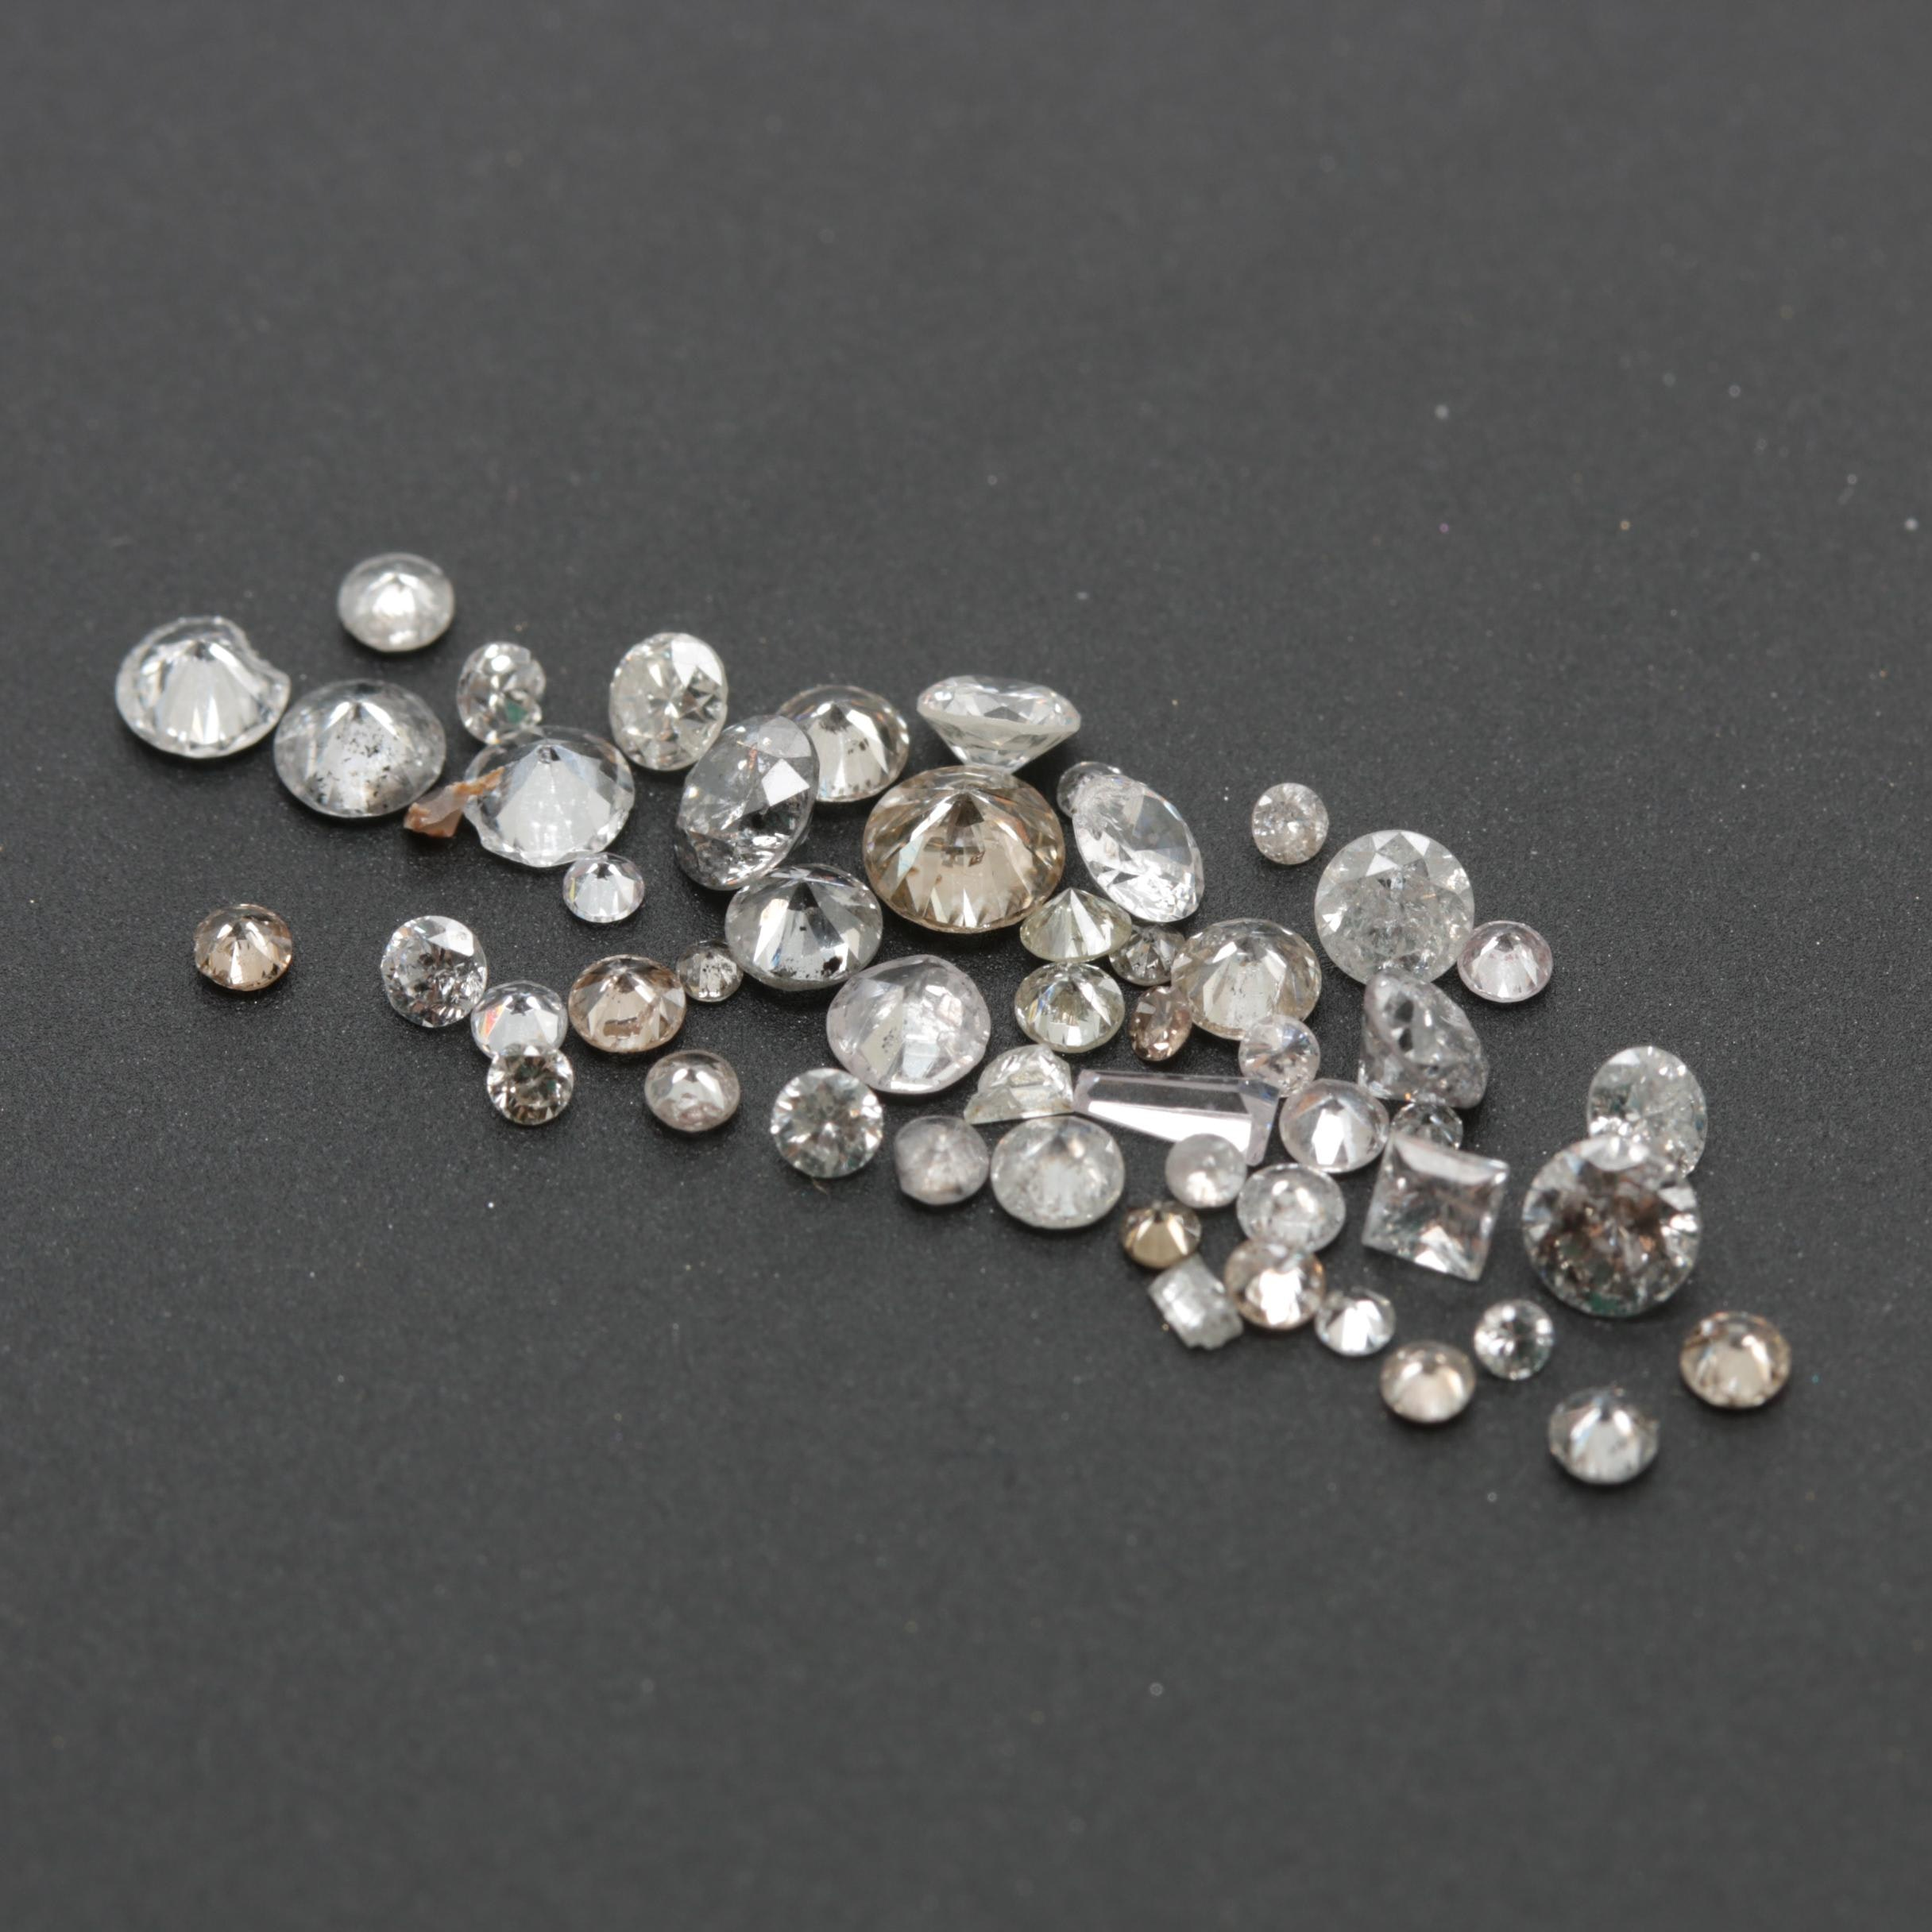 Loose 2.76 CTW Diamond Assortment